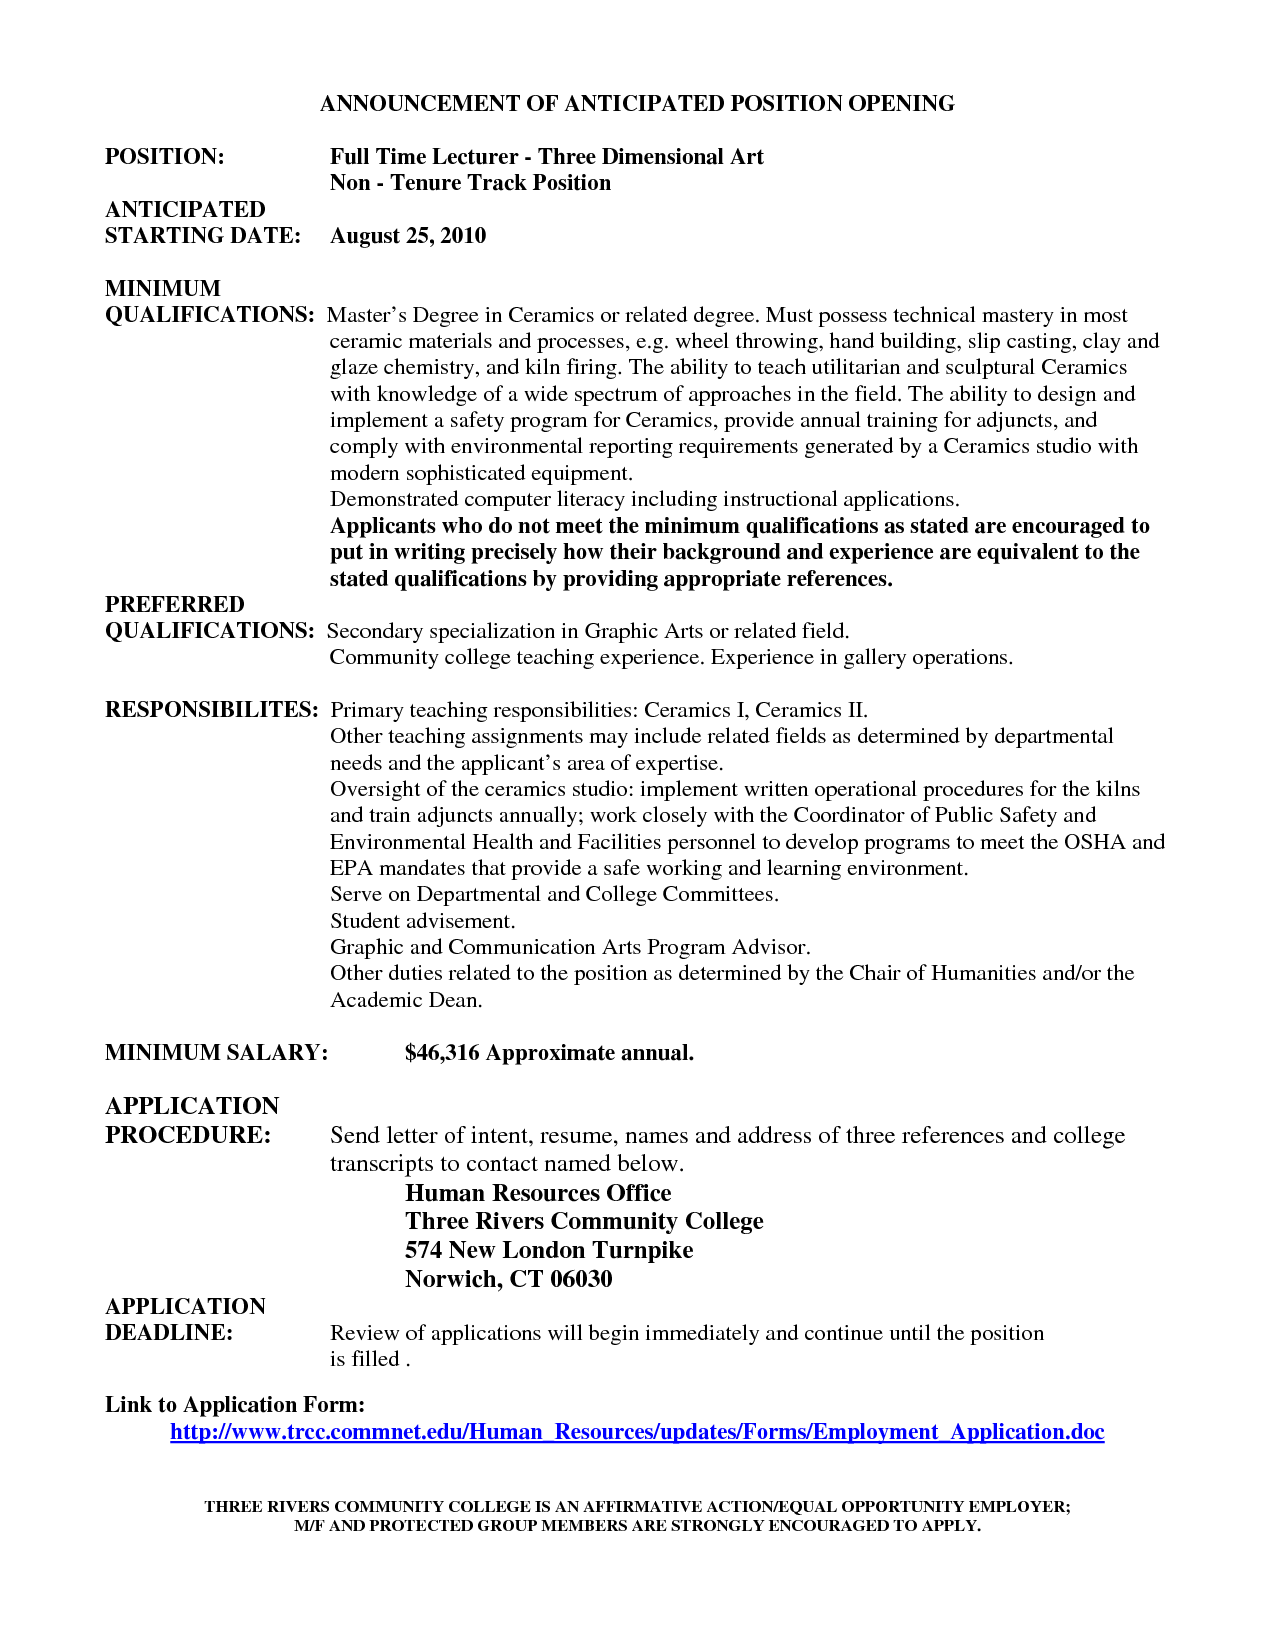 Resume Review Worksheet